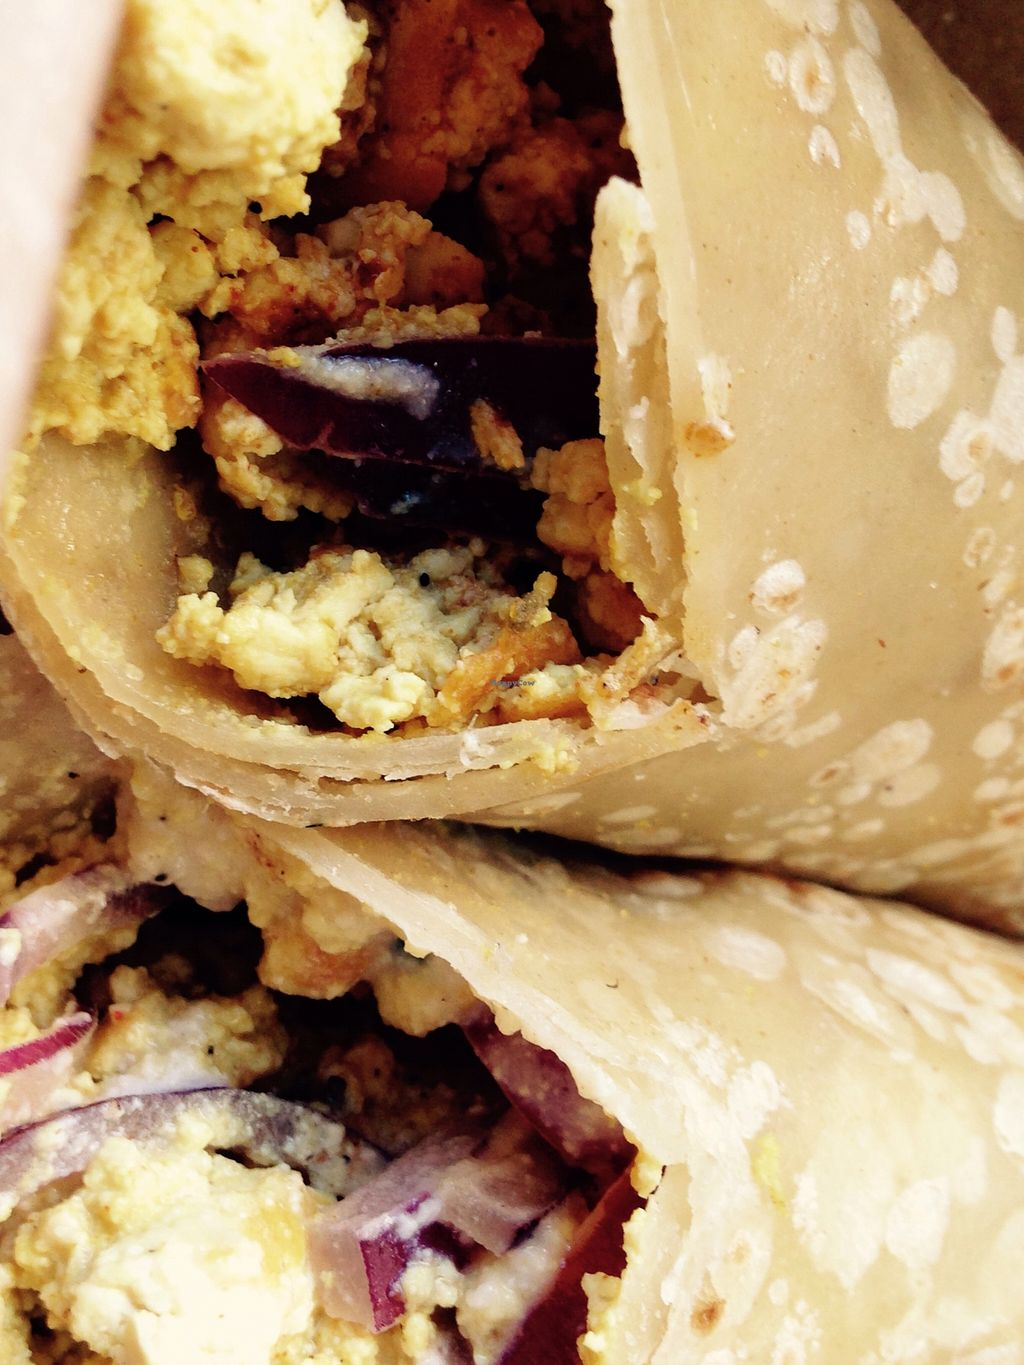 """Photo of Local Sprouts Cafe  by <a href=""""/members/profile/cookiem"""">cookiem</a> <br/>Vegan gf brekkie burrito <br/> August 19, 2015  - <a href='/contact/abuse/image/24091/114285'>Report</a>"""